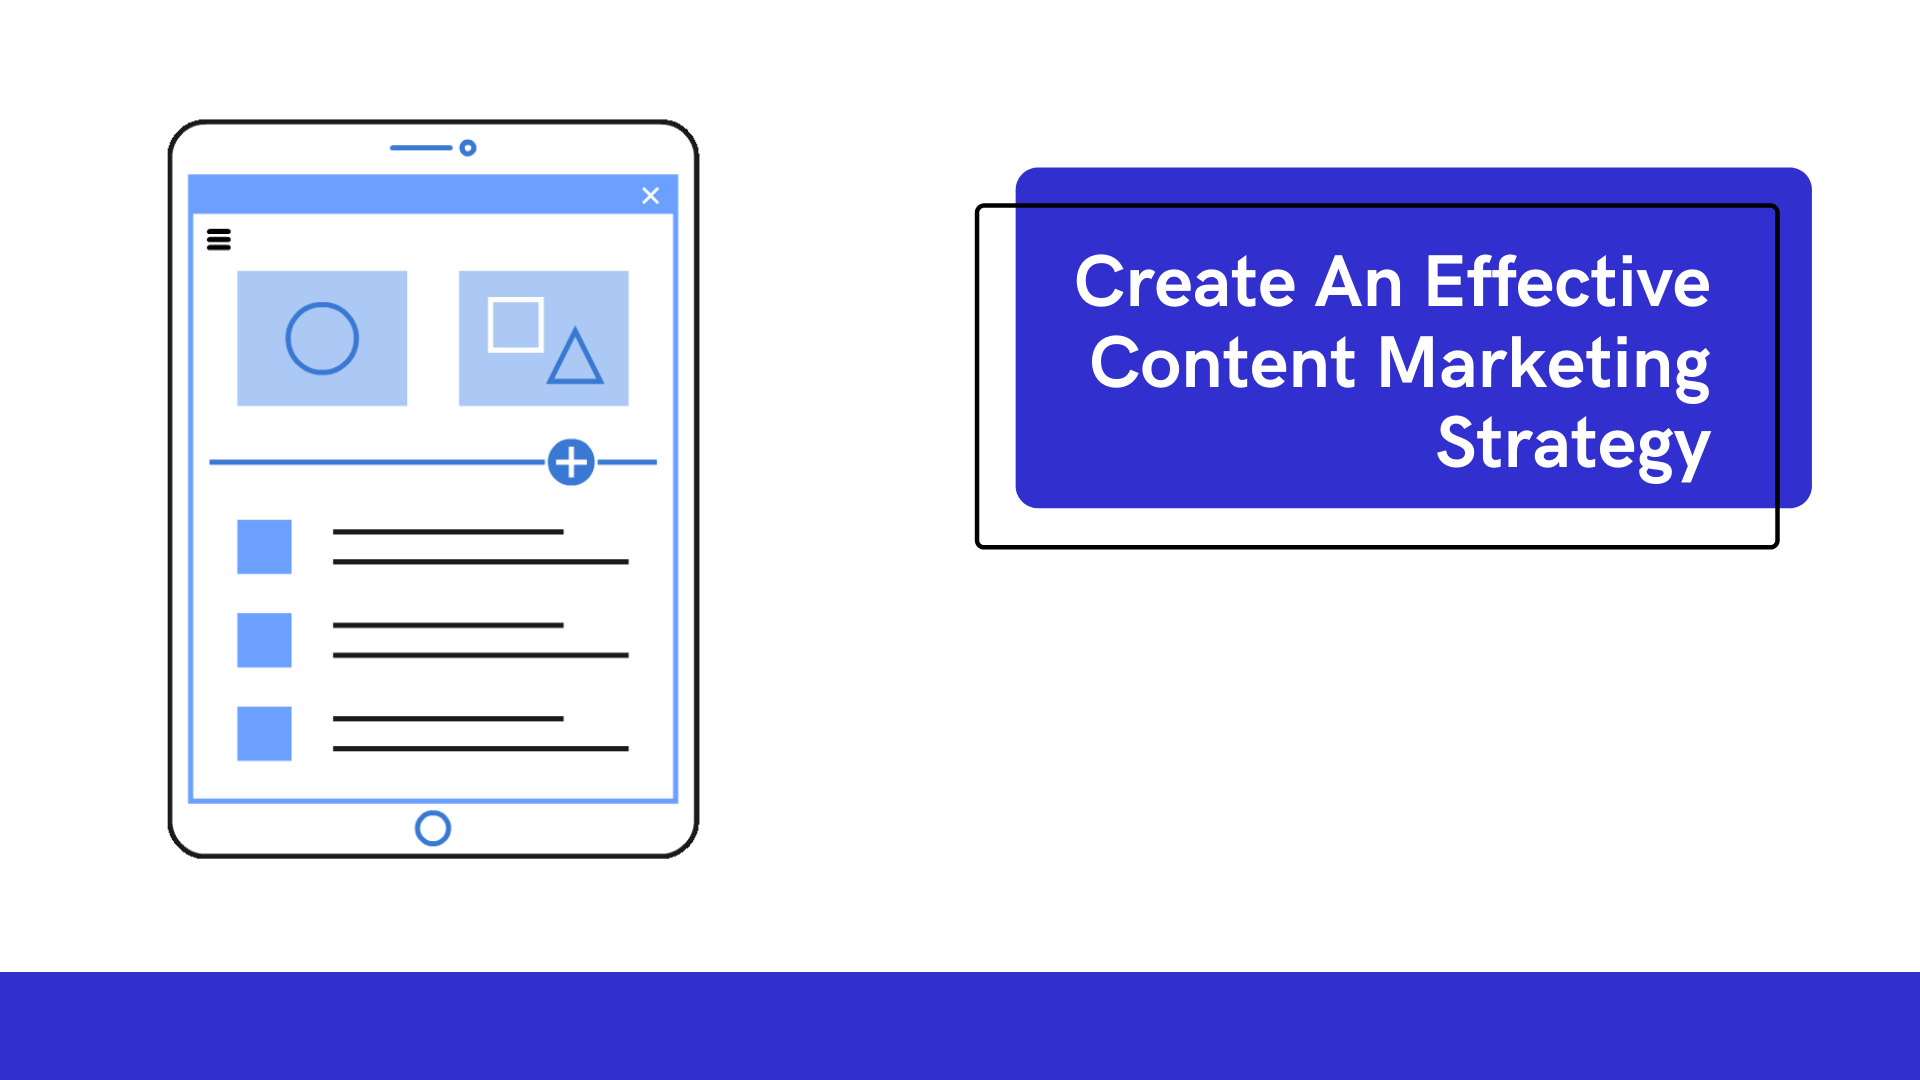 create an effective content marketing strategy